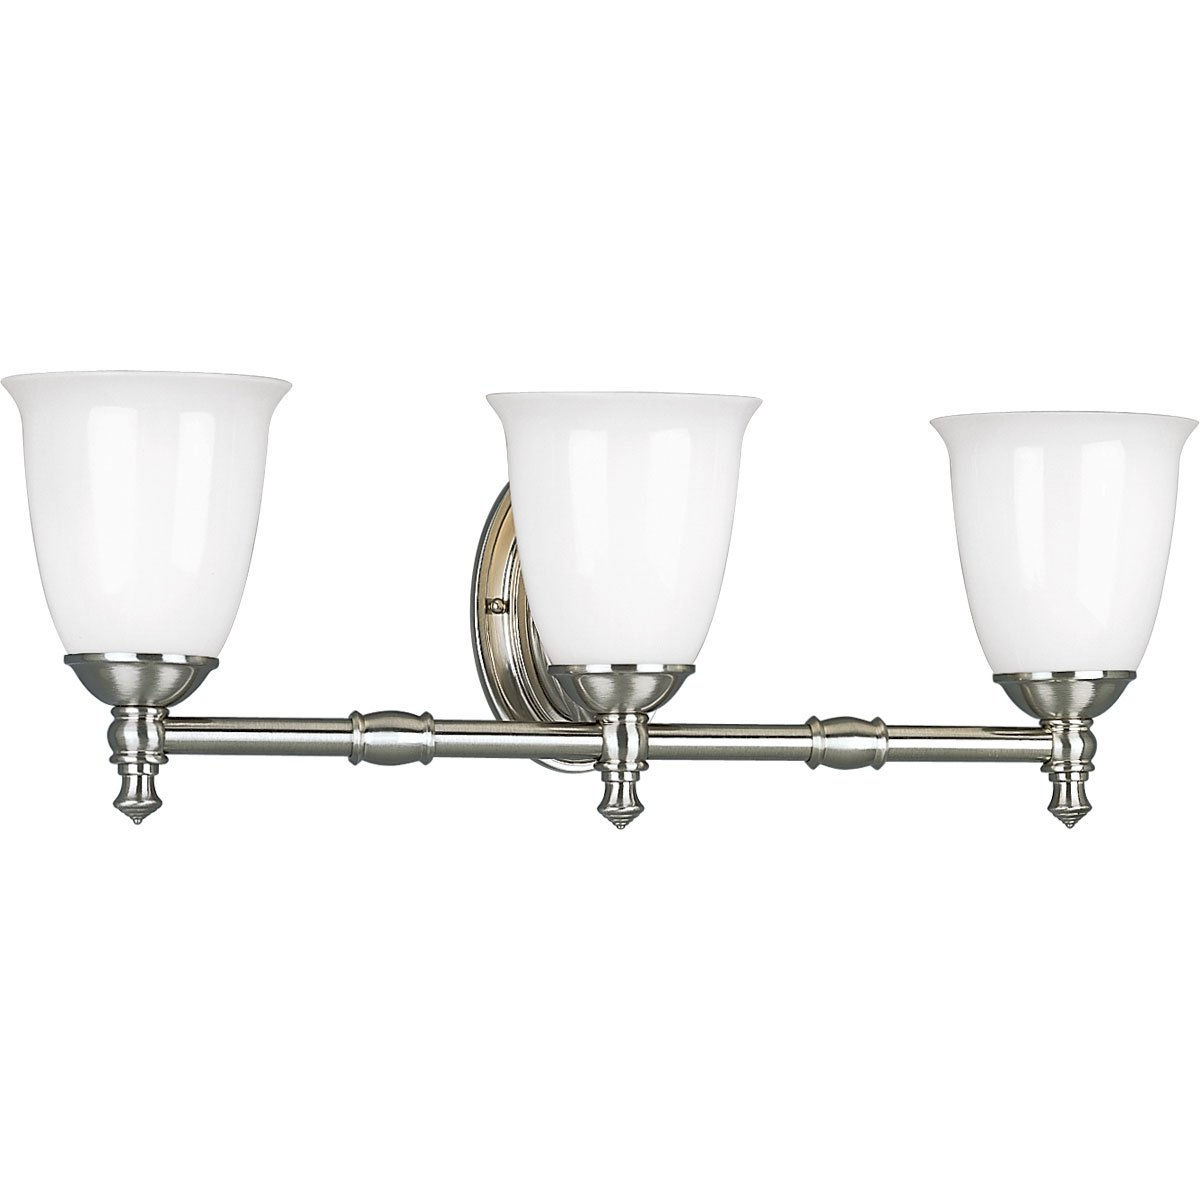 progress lighting p3029 15 3 light bath bracket with white opal